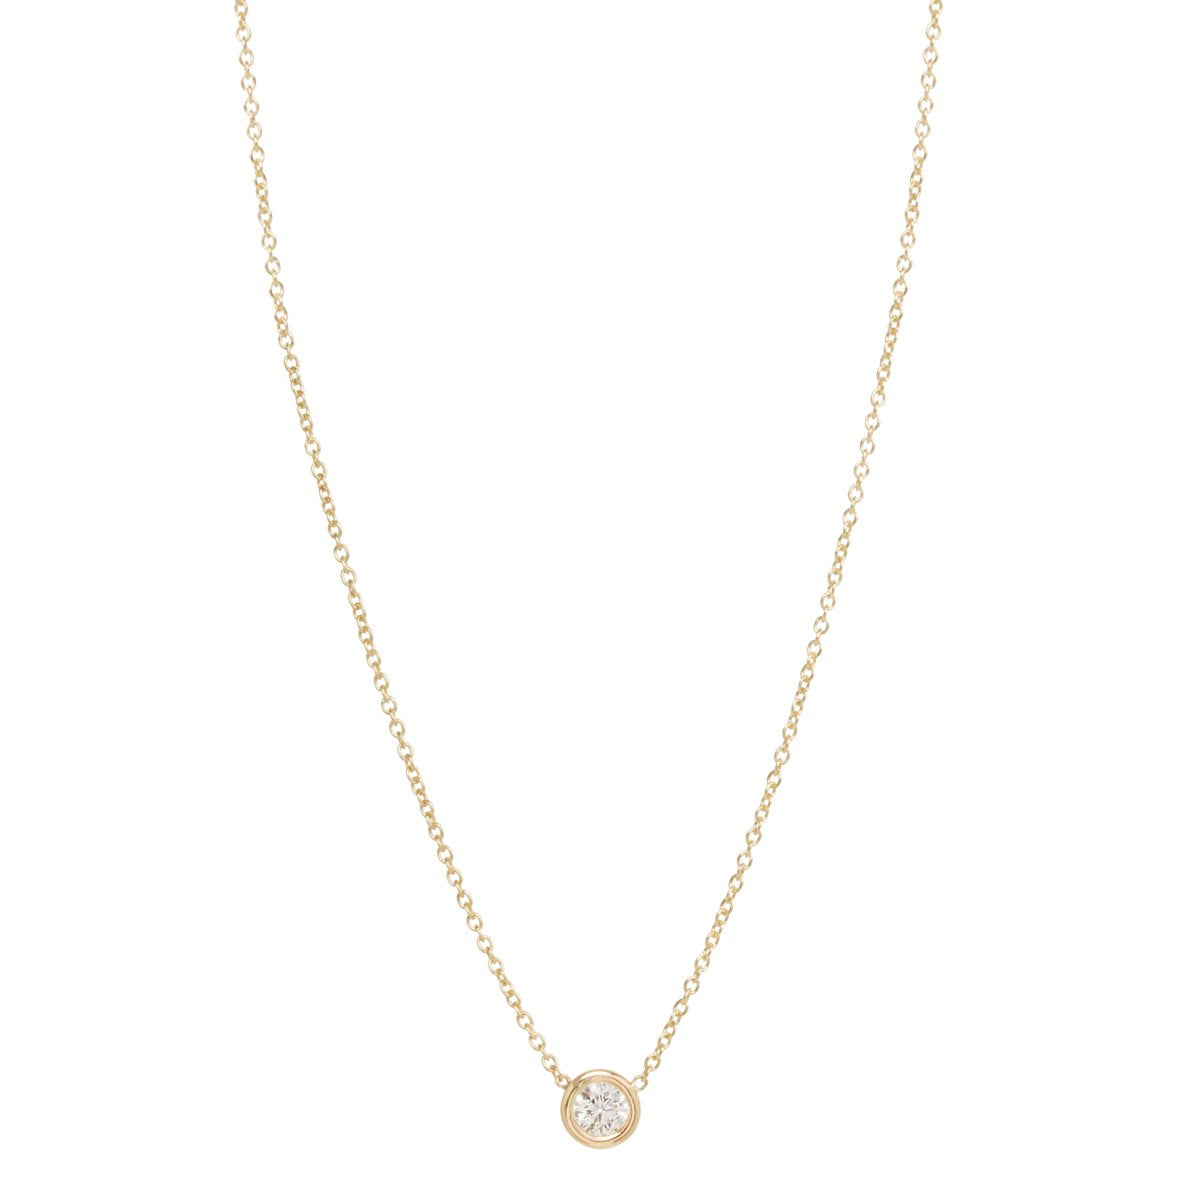 Yellow Gold Chain Necklace with Single Inset White Diamond